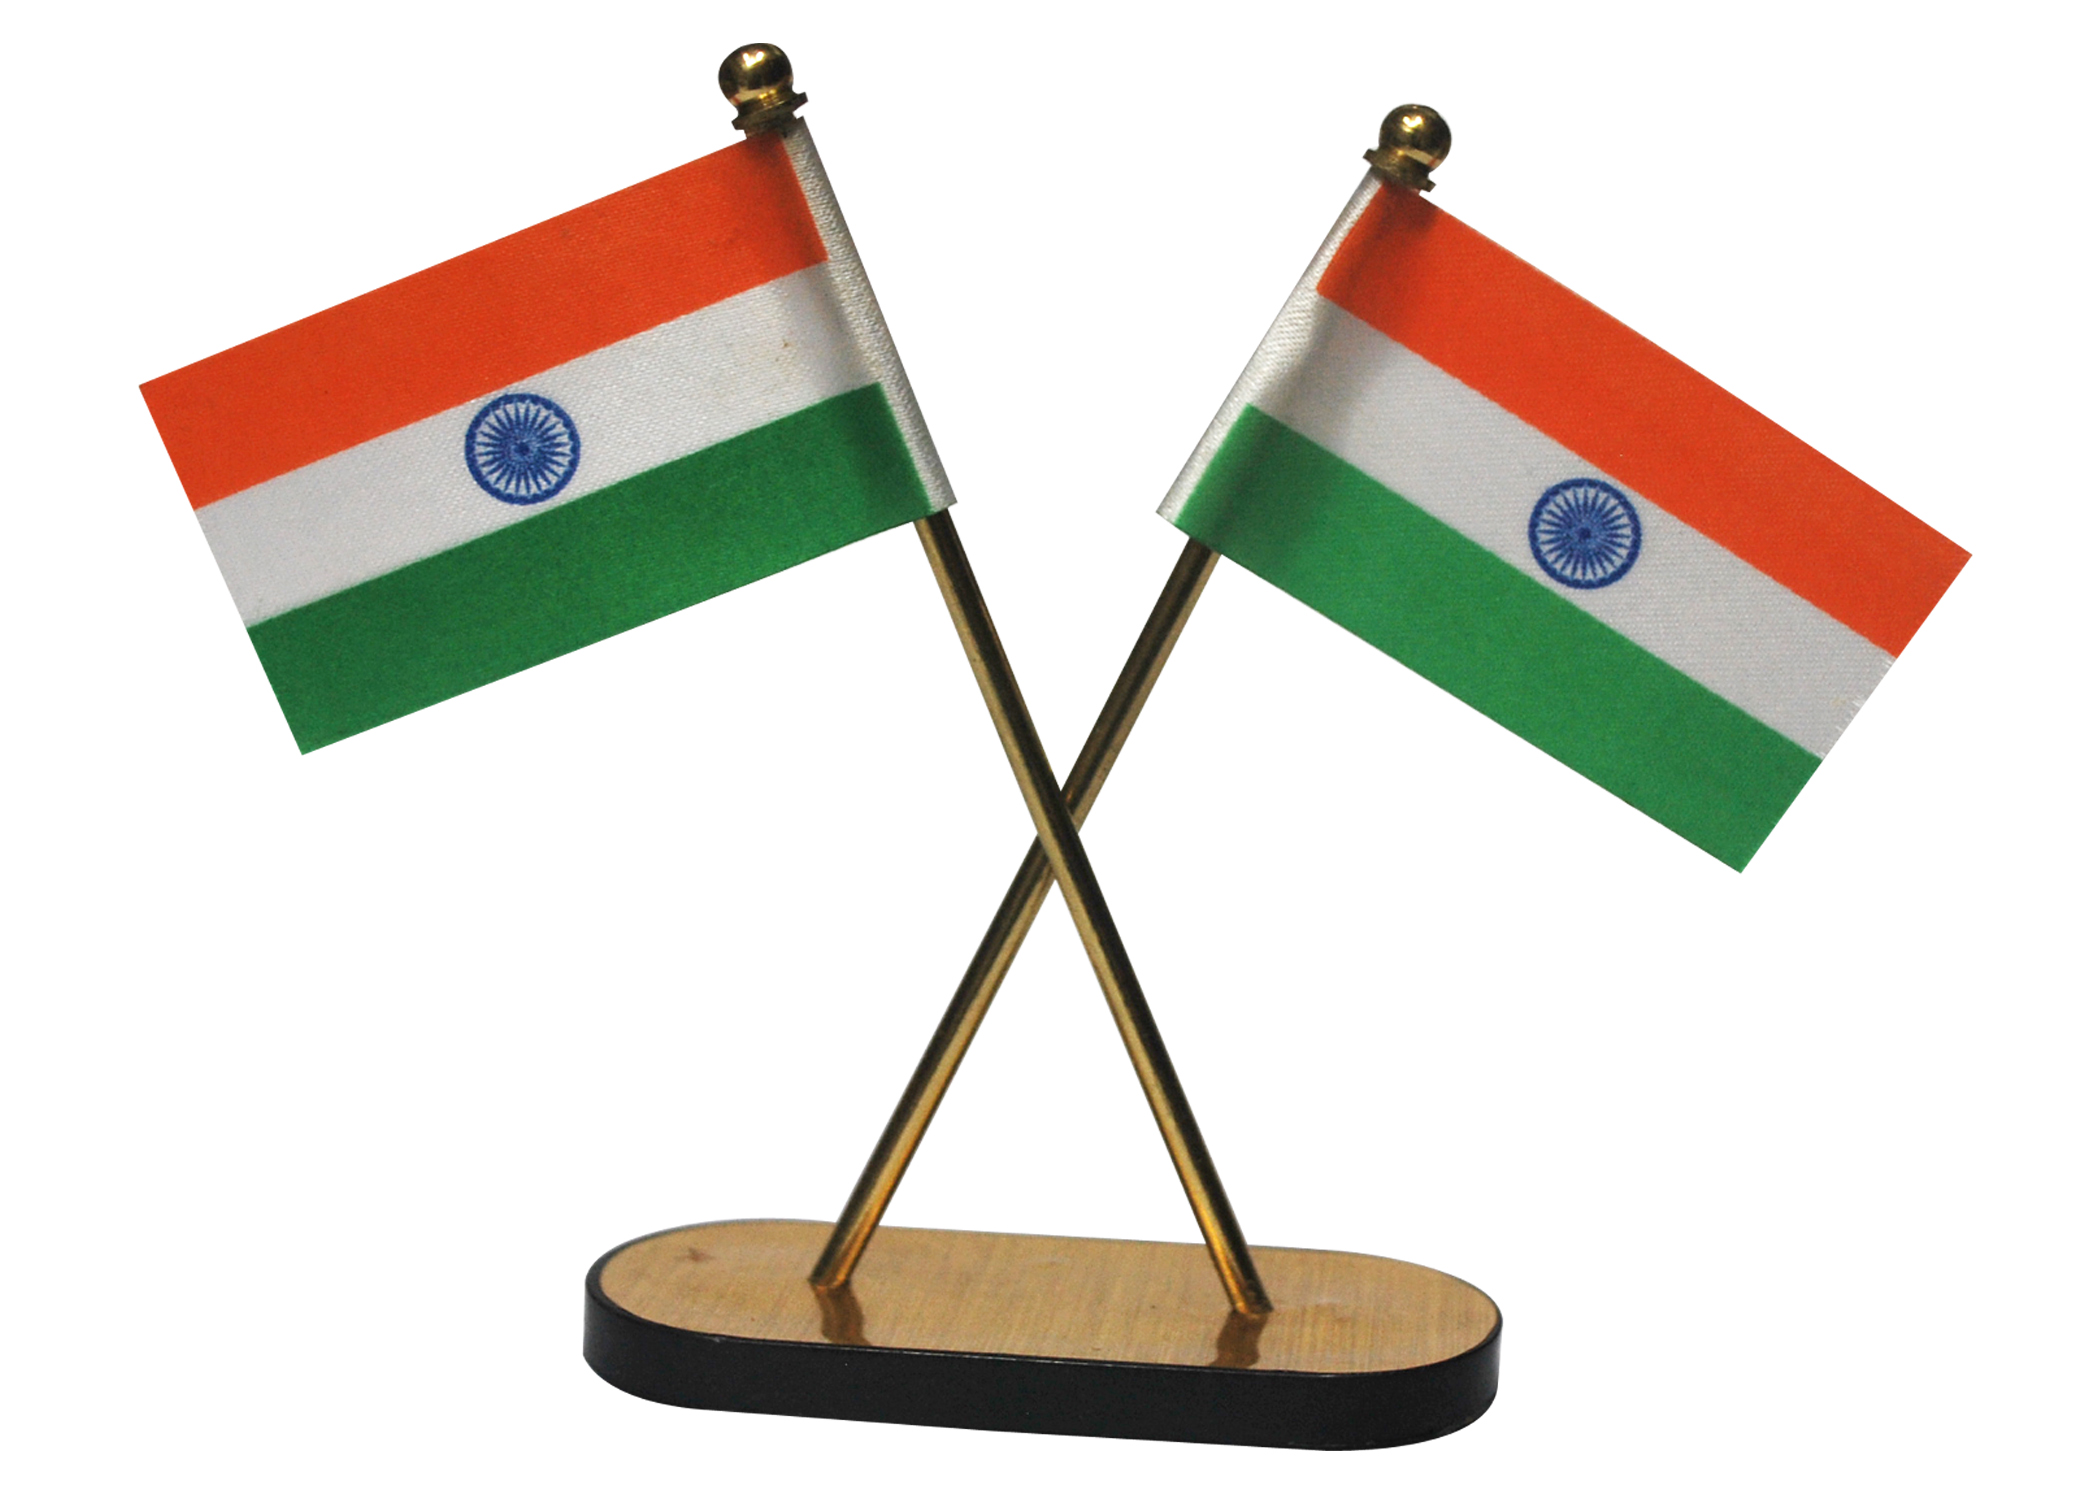 Indian Flag Wallpapers - HD Images for 26 Jan Free Download